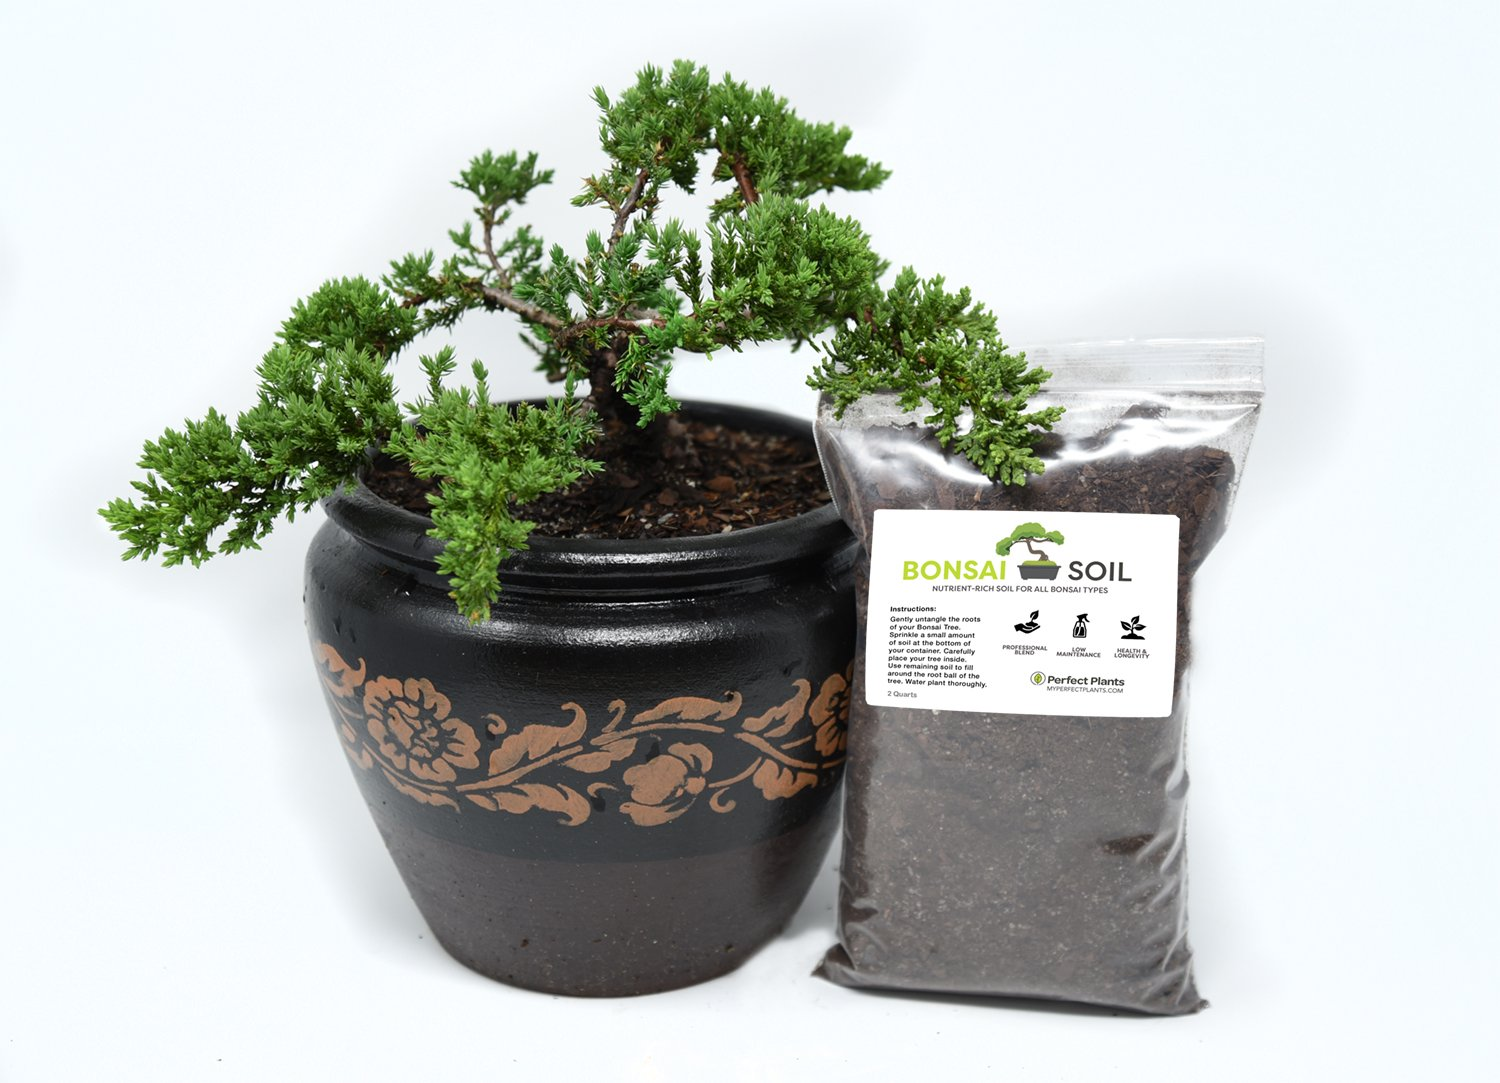 Bonsai Soil by Perfect Plants — Organic, 2 Quarts Professionally Mixed for Proper Nutrients and Moisture Retention — Multi-Purpose Soil for All Bonsai Tree Types